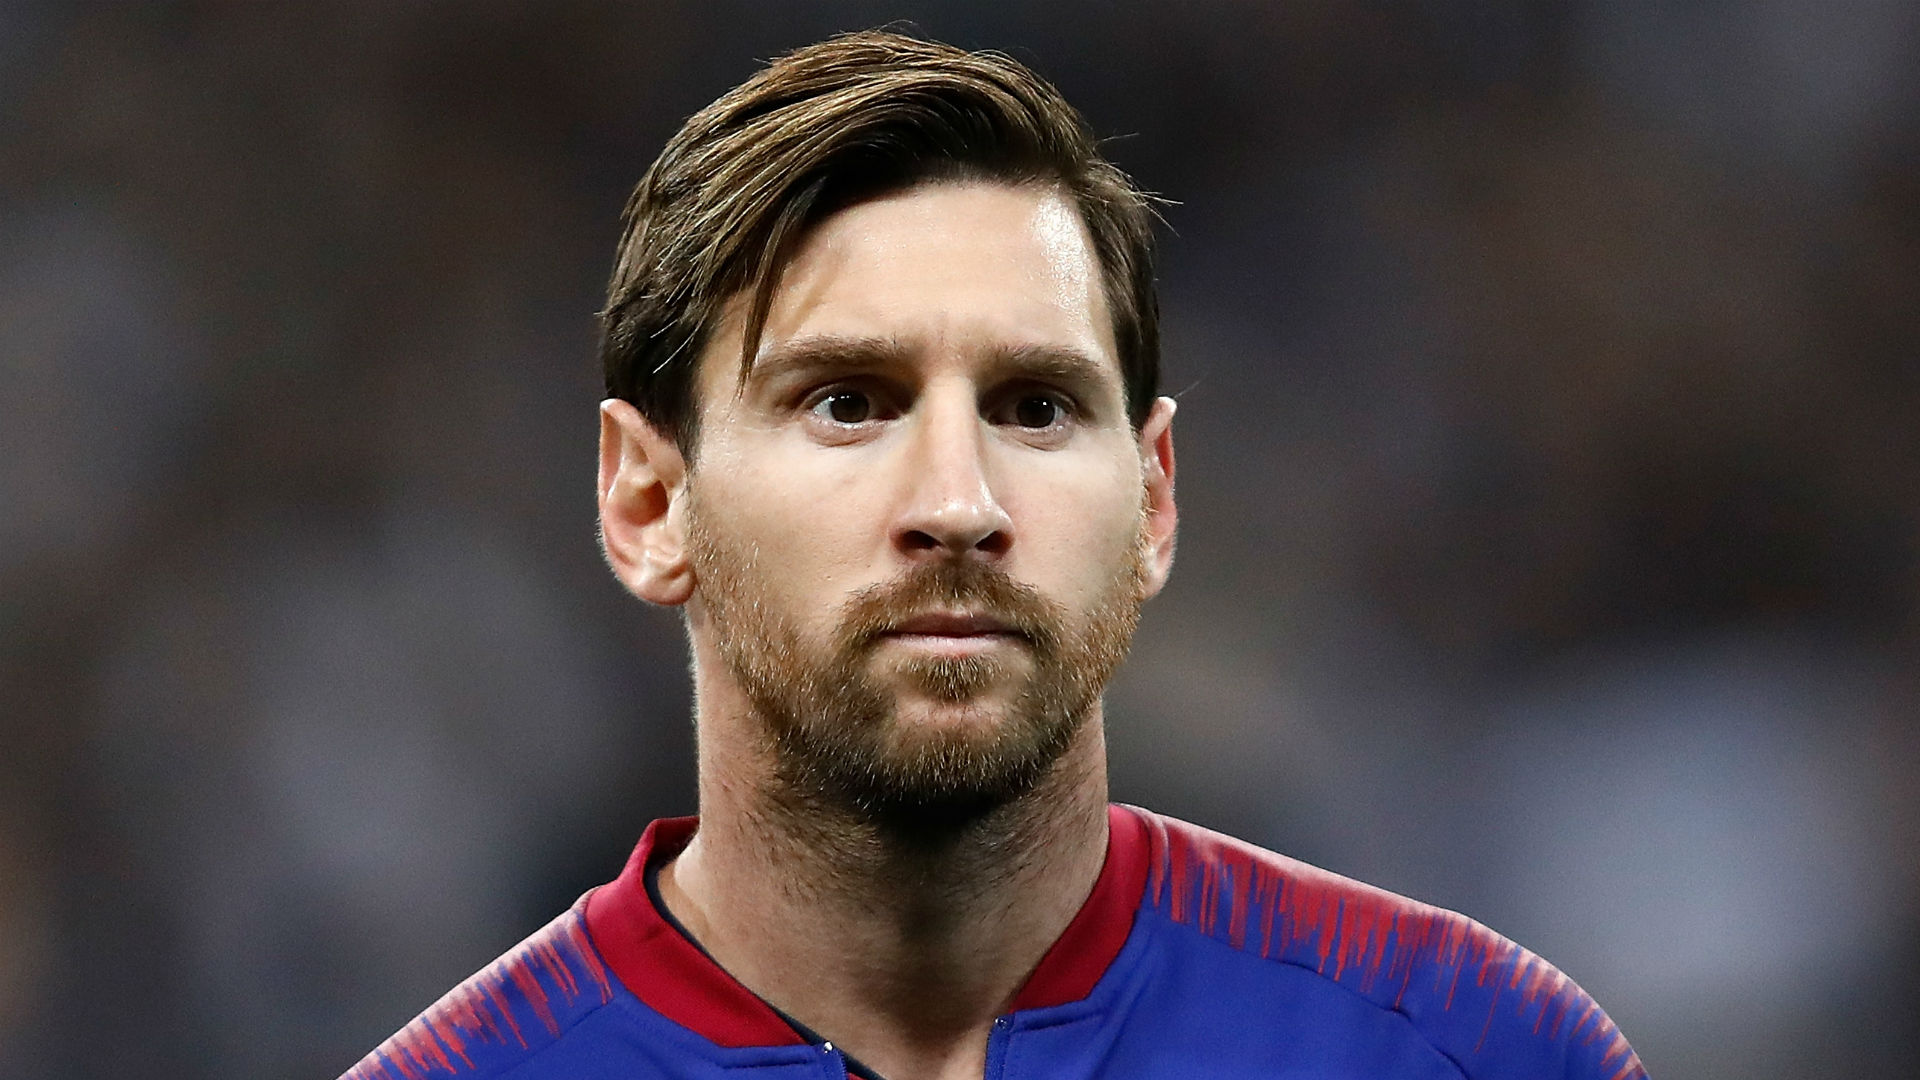 Lionel Messi turned down Manchester City's eye-watering offer, claims chairman